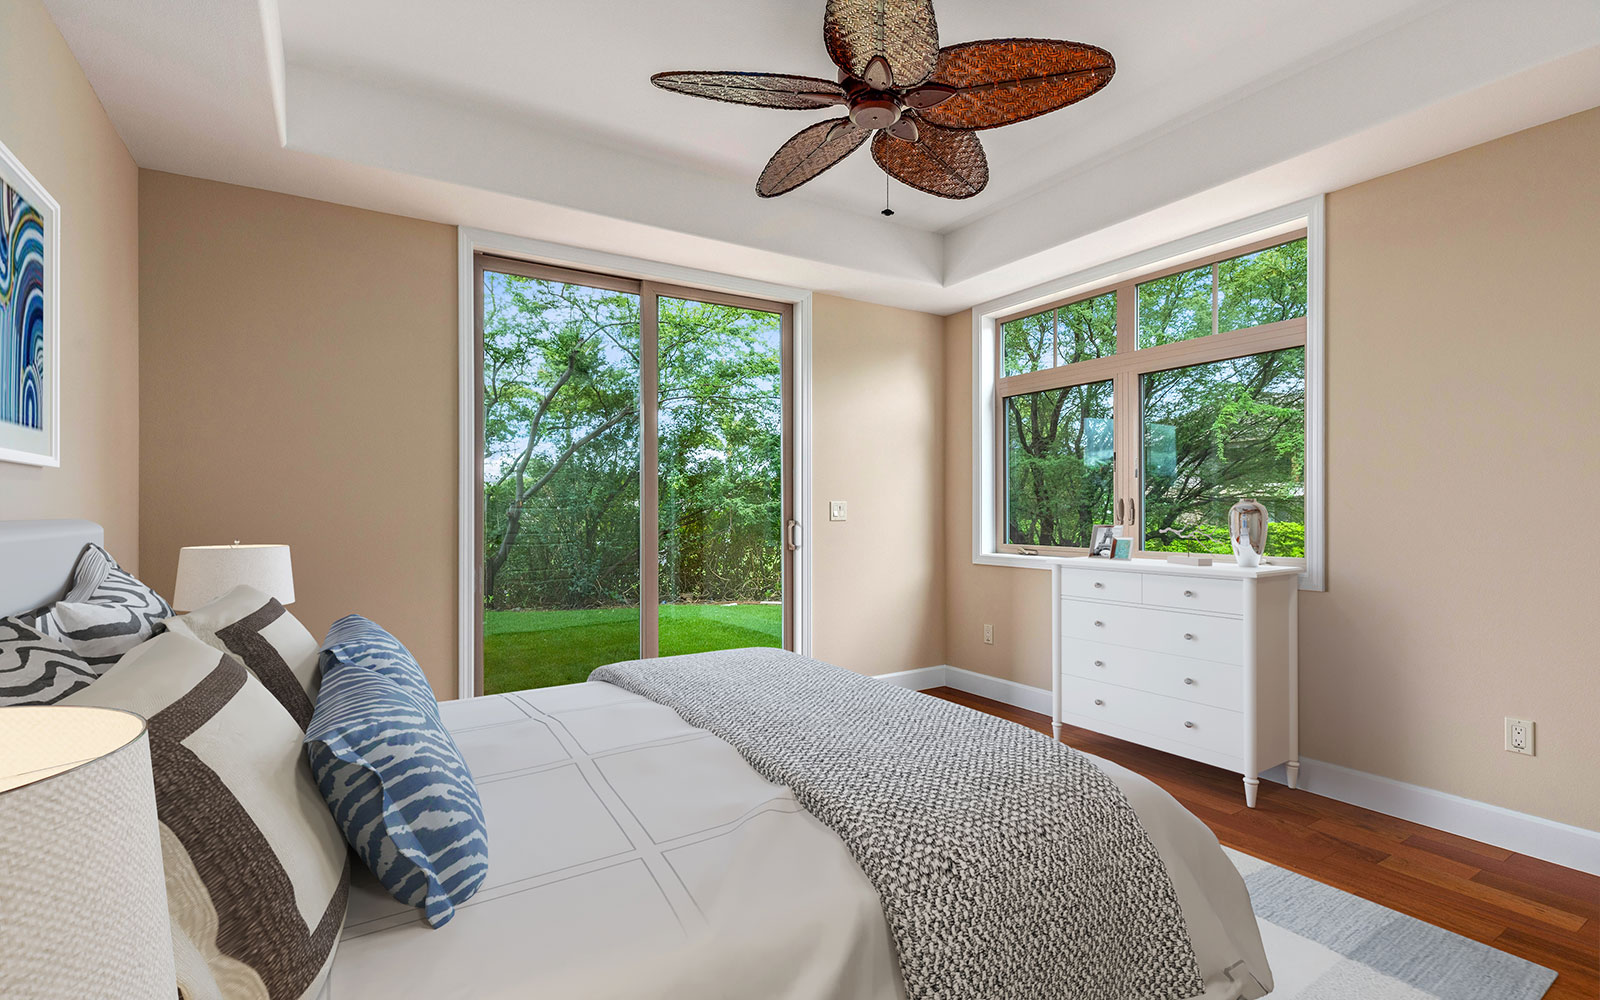 bedroom-sliding-door-mahina-plan-4-kamilo-at-mauna-lani-big-island-brookfield-residential